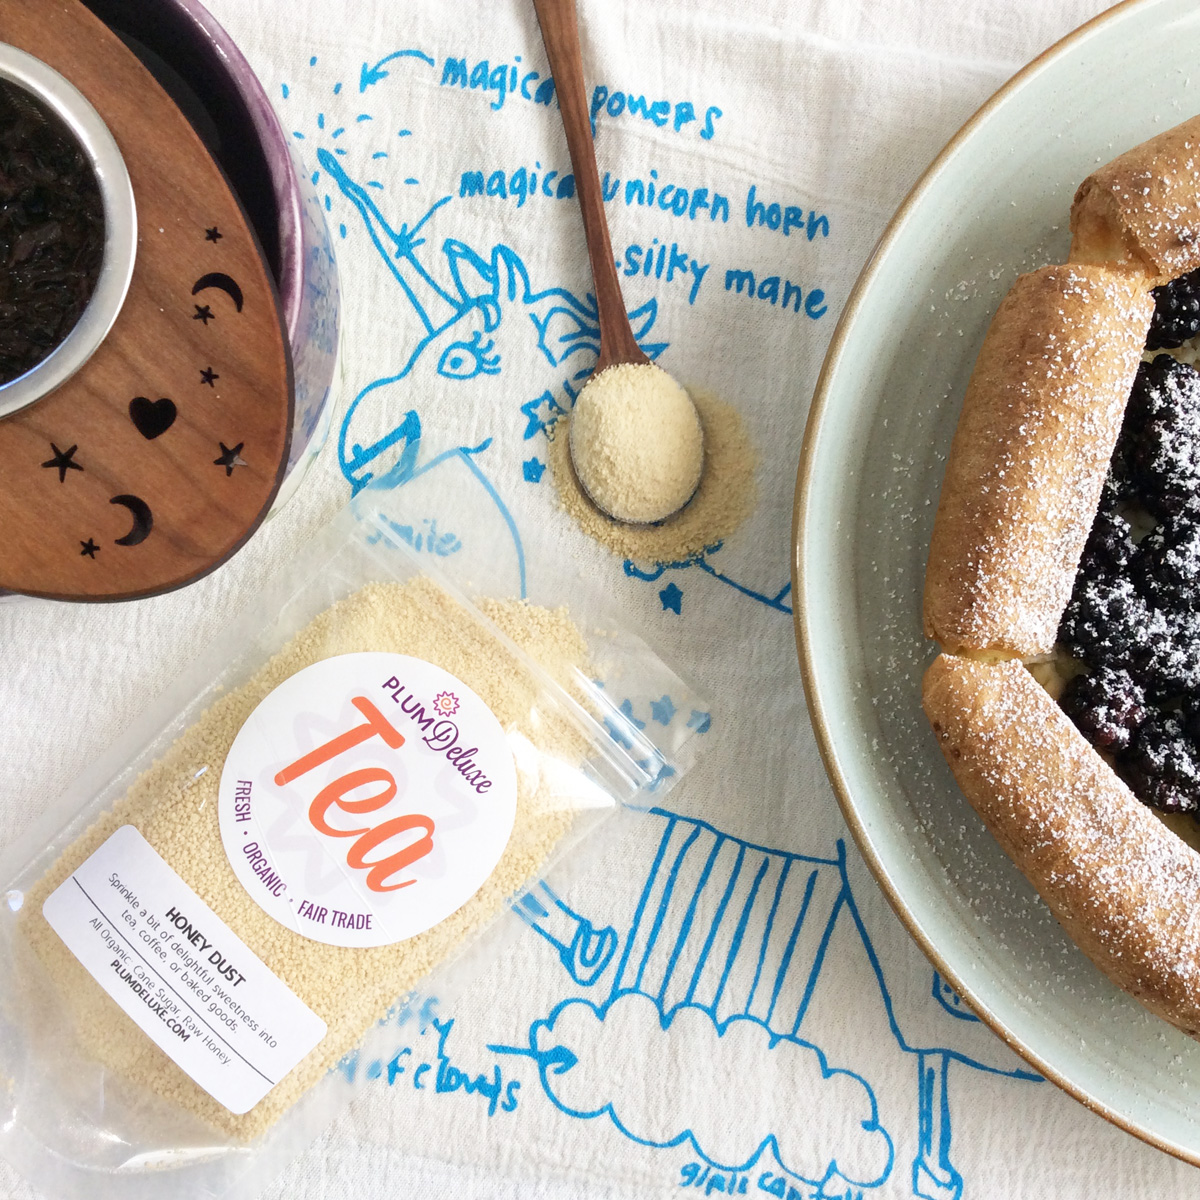 Overhead view of a bag of honey dust with a wooden spoon, a cup of tea with wooden infuser, and a plate with a dutch baby pancake on a unicorn tea towel.